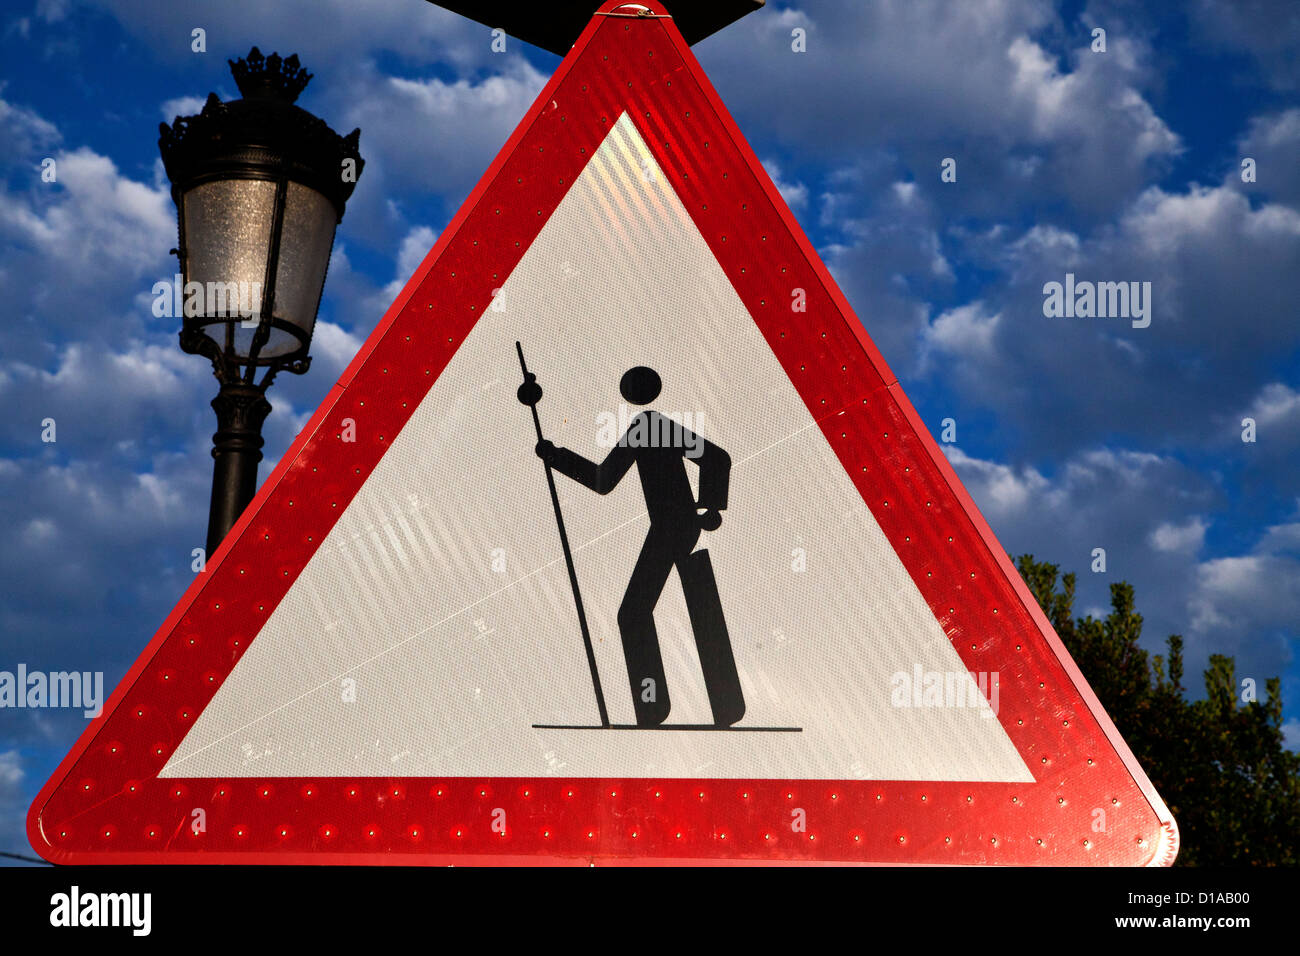 Stylized pilgrim symbol on a yield sign, on the Camino to Santiago de Compostela Spain - Stock Image